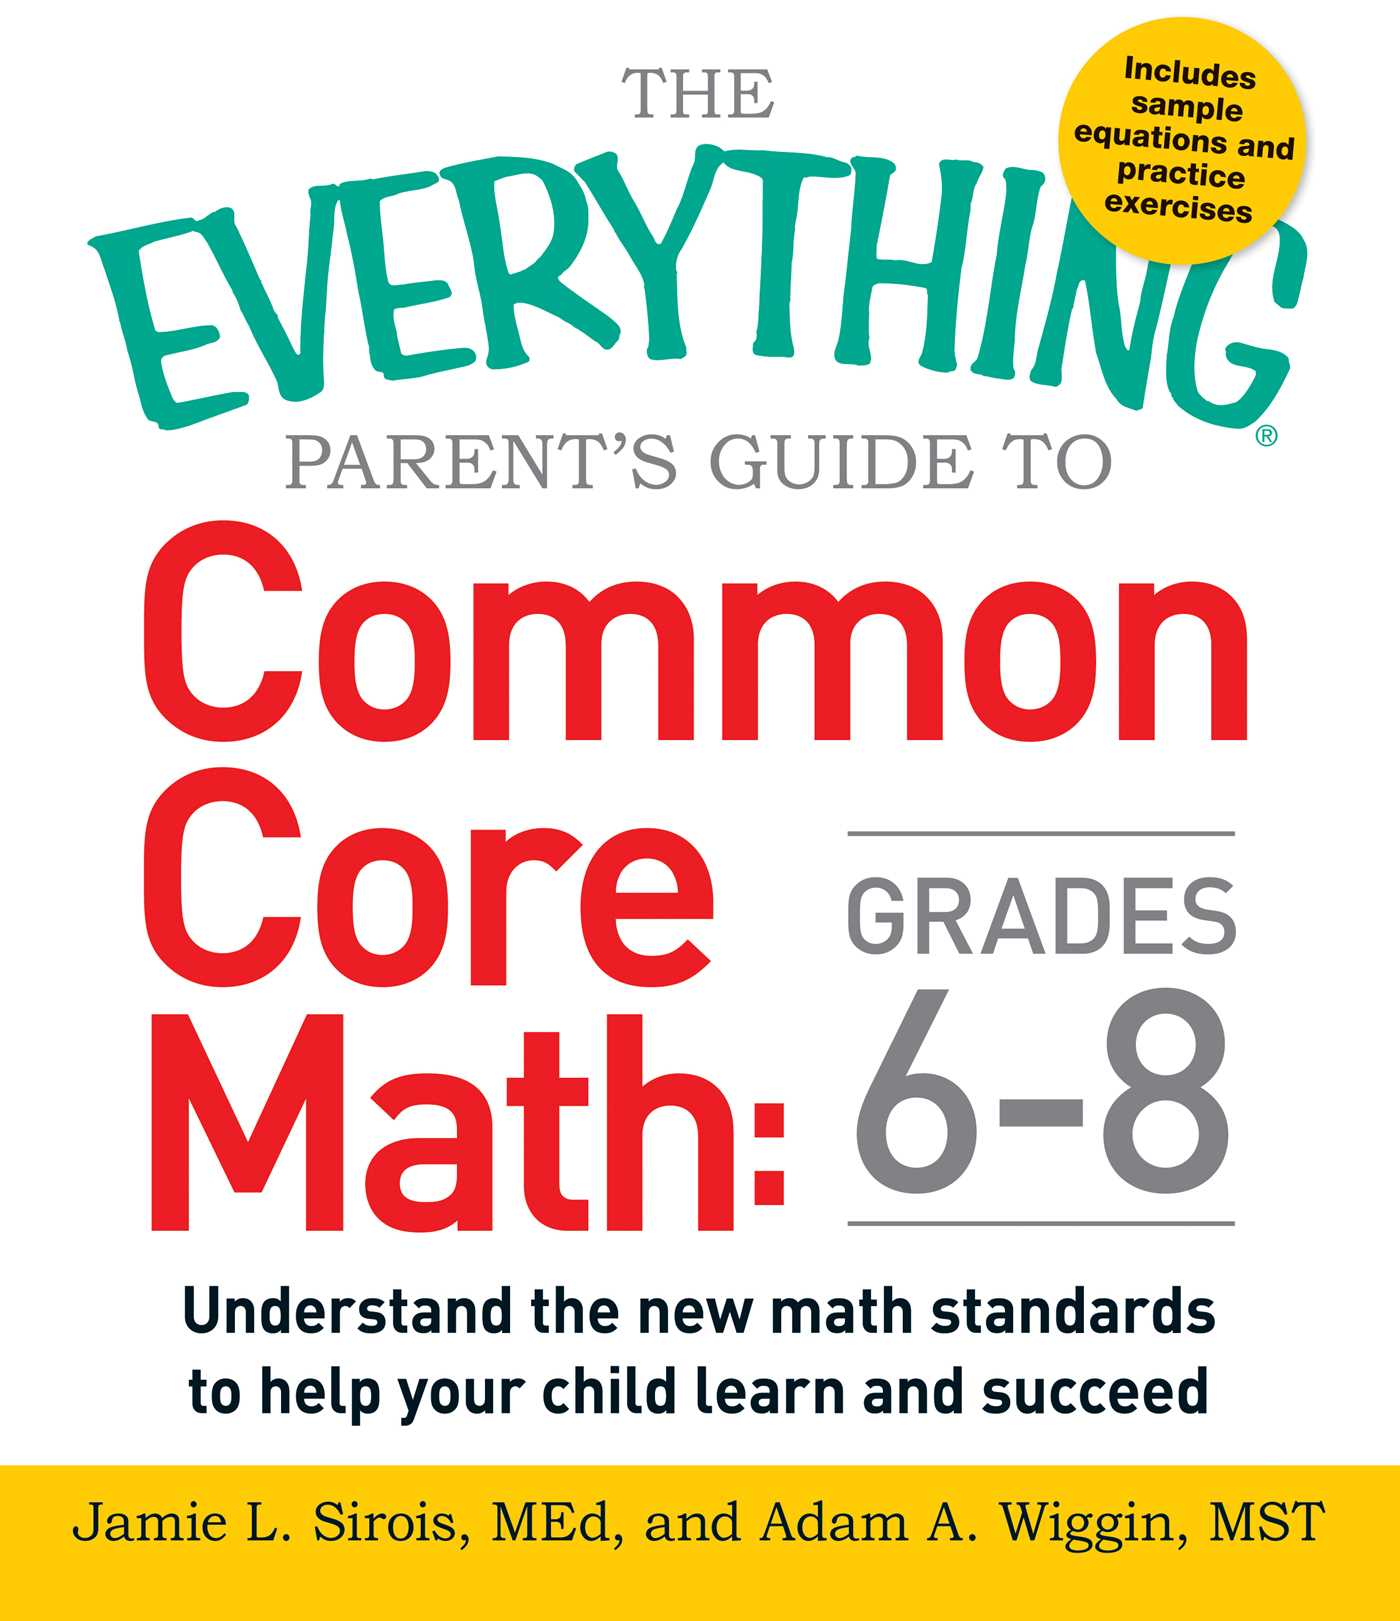 The everything parent's guide to common core math, grades 6-8 : understand the new math standards to help your child learn and succeed